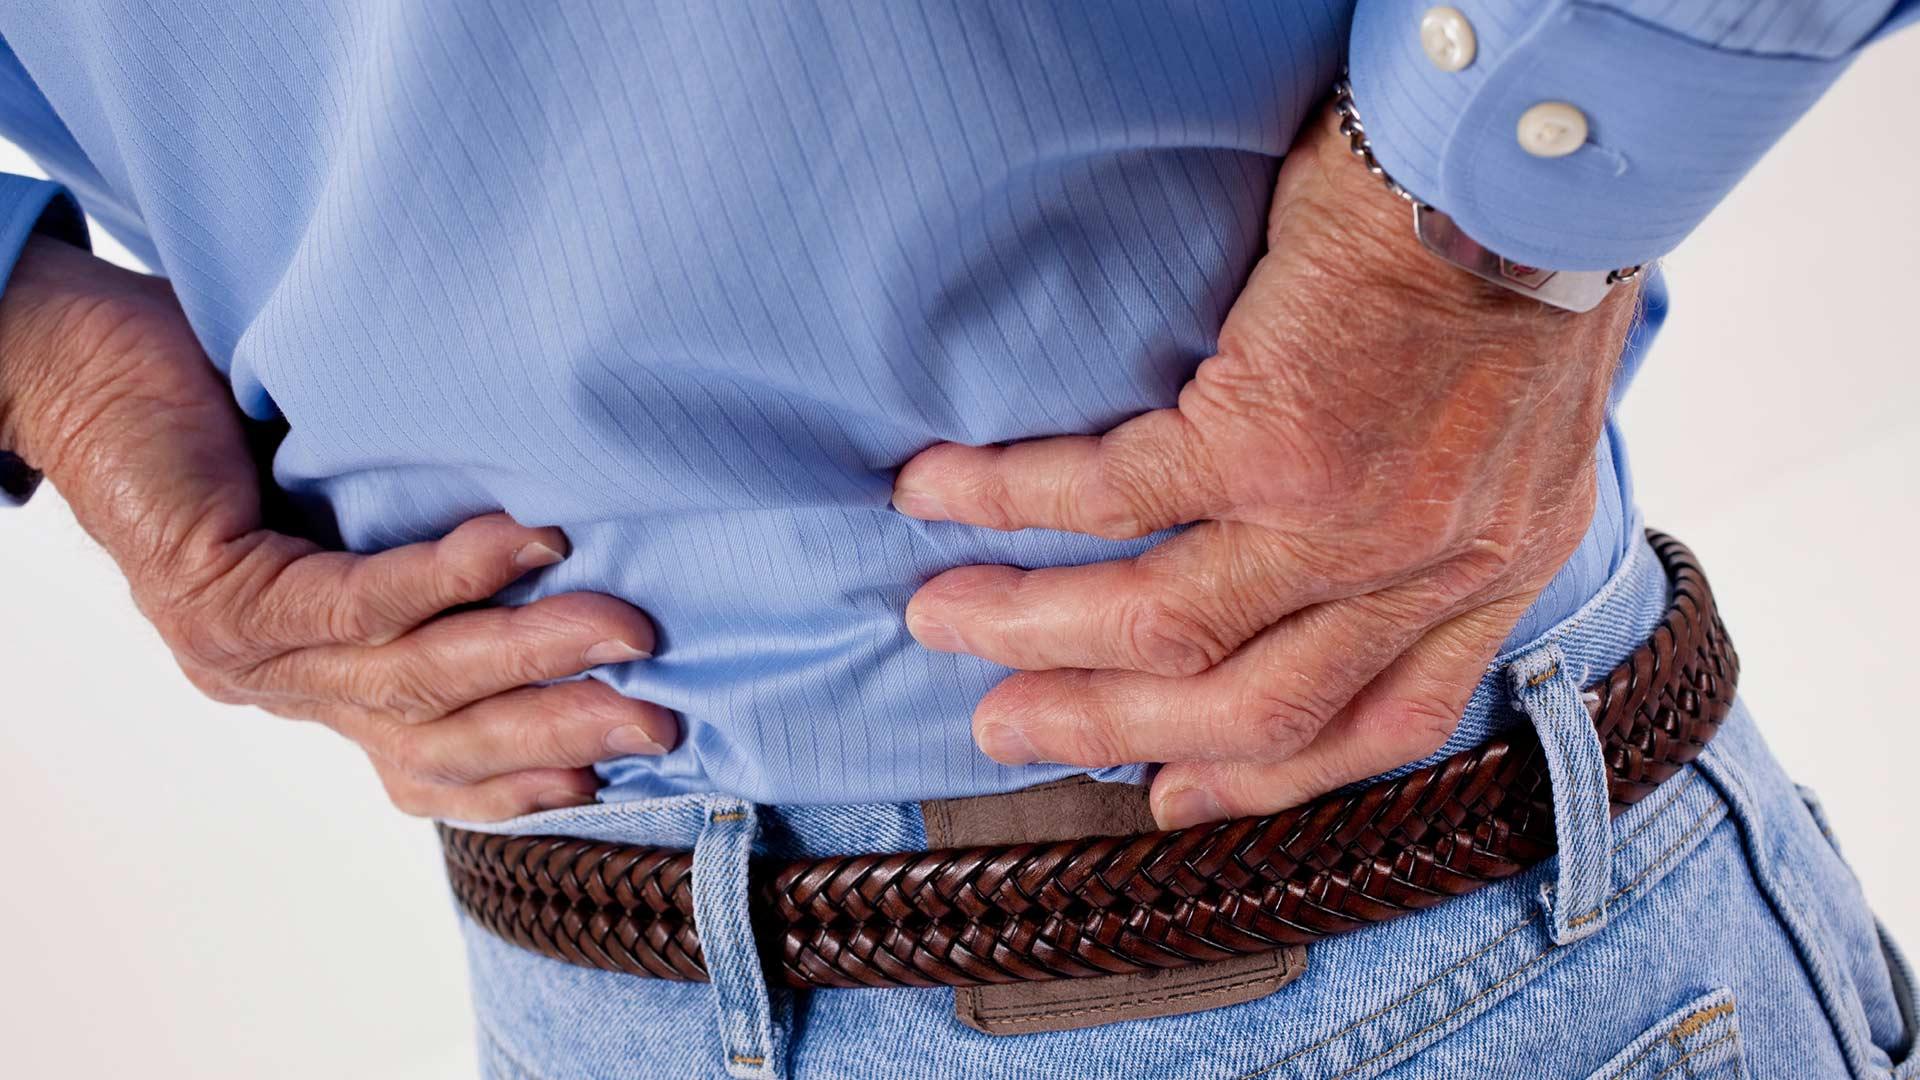 The American Chiropractic Association estimates 31 million Americans complain of lower back pain.